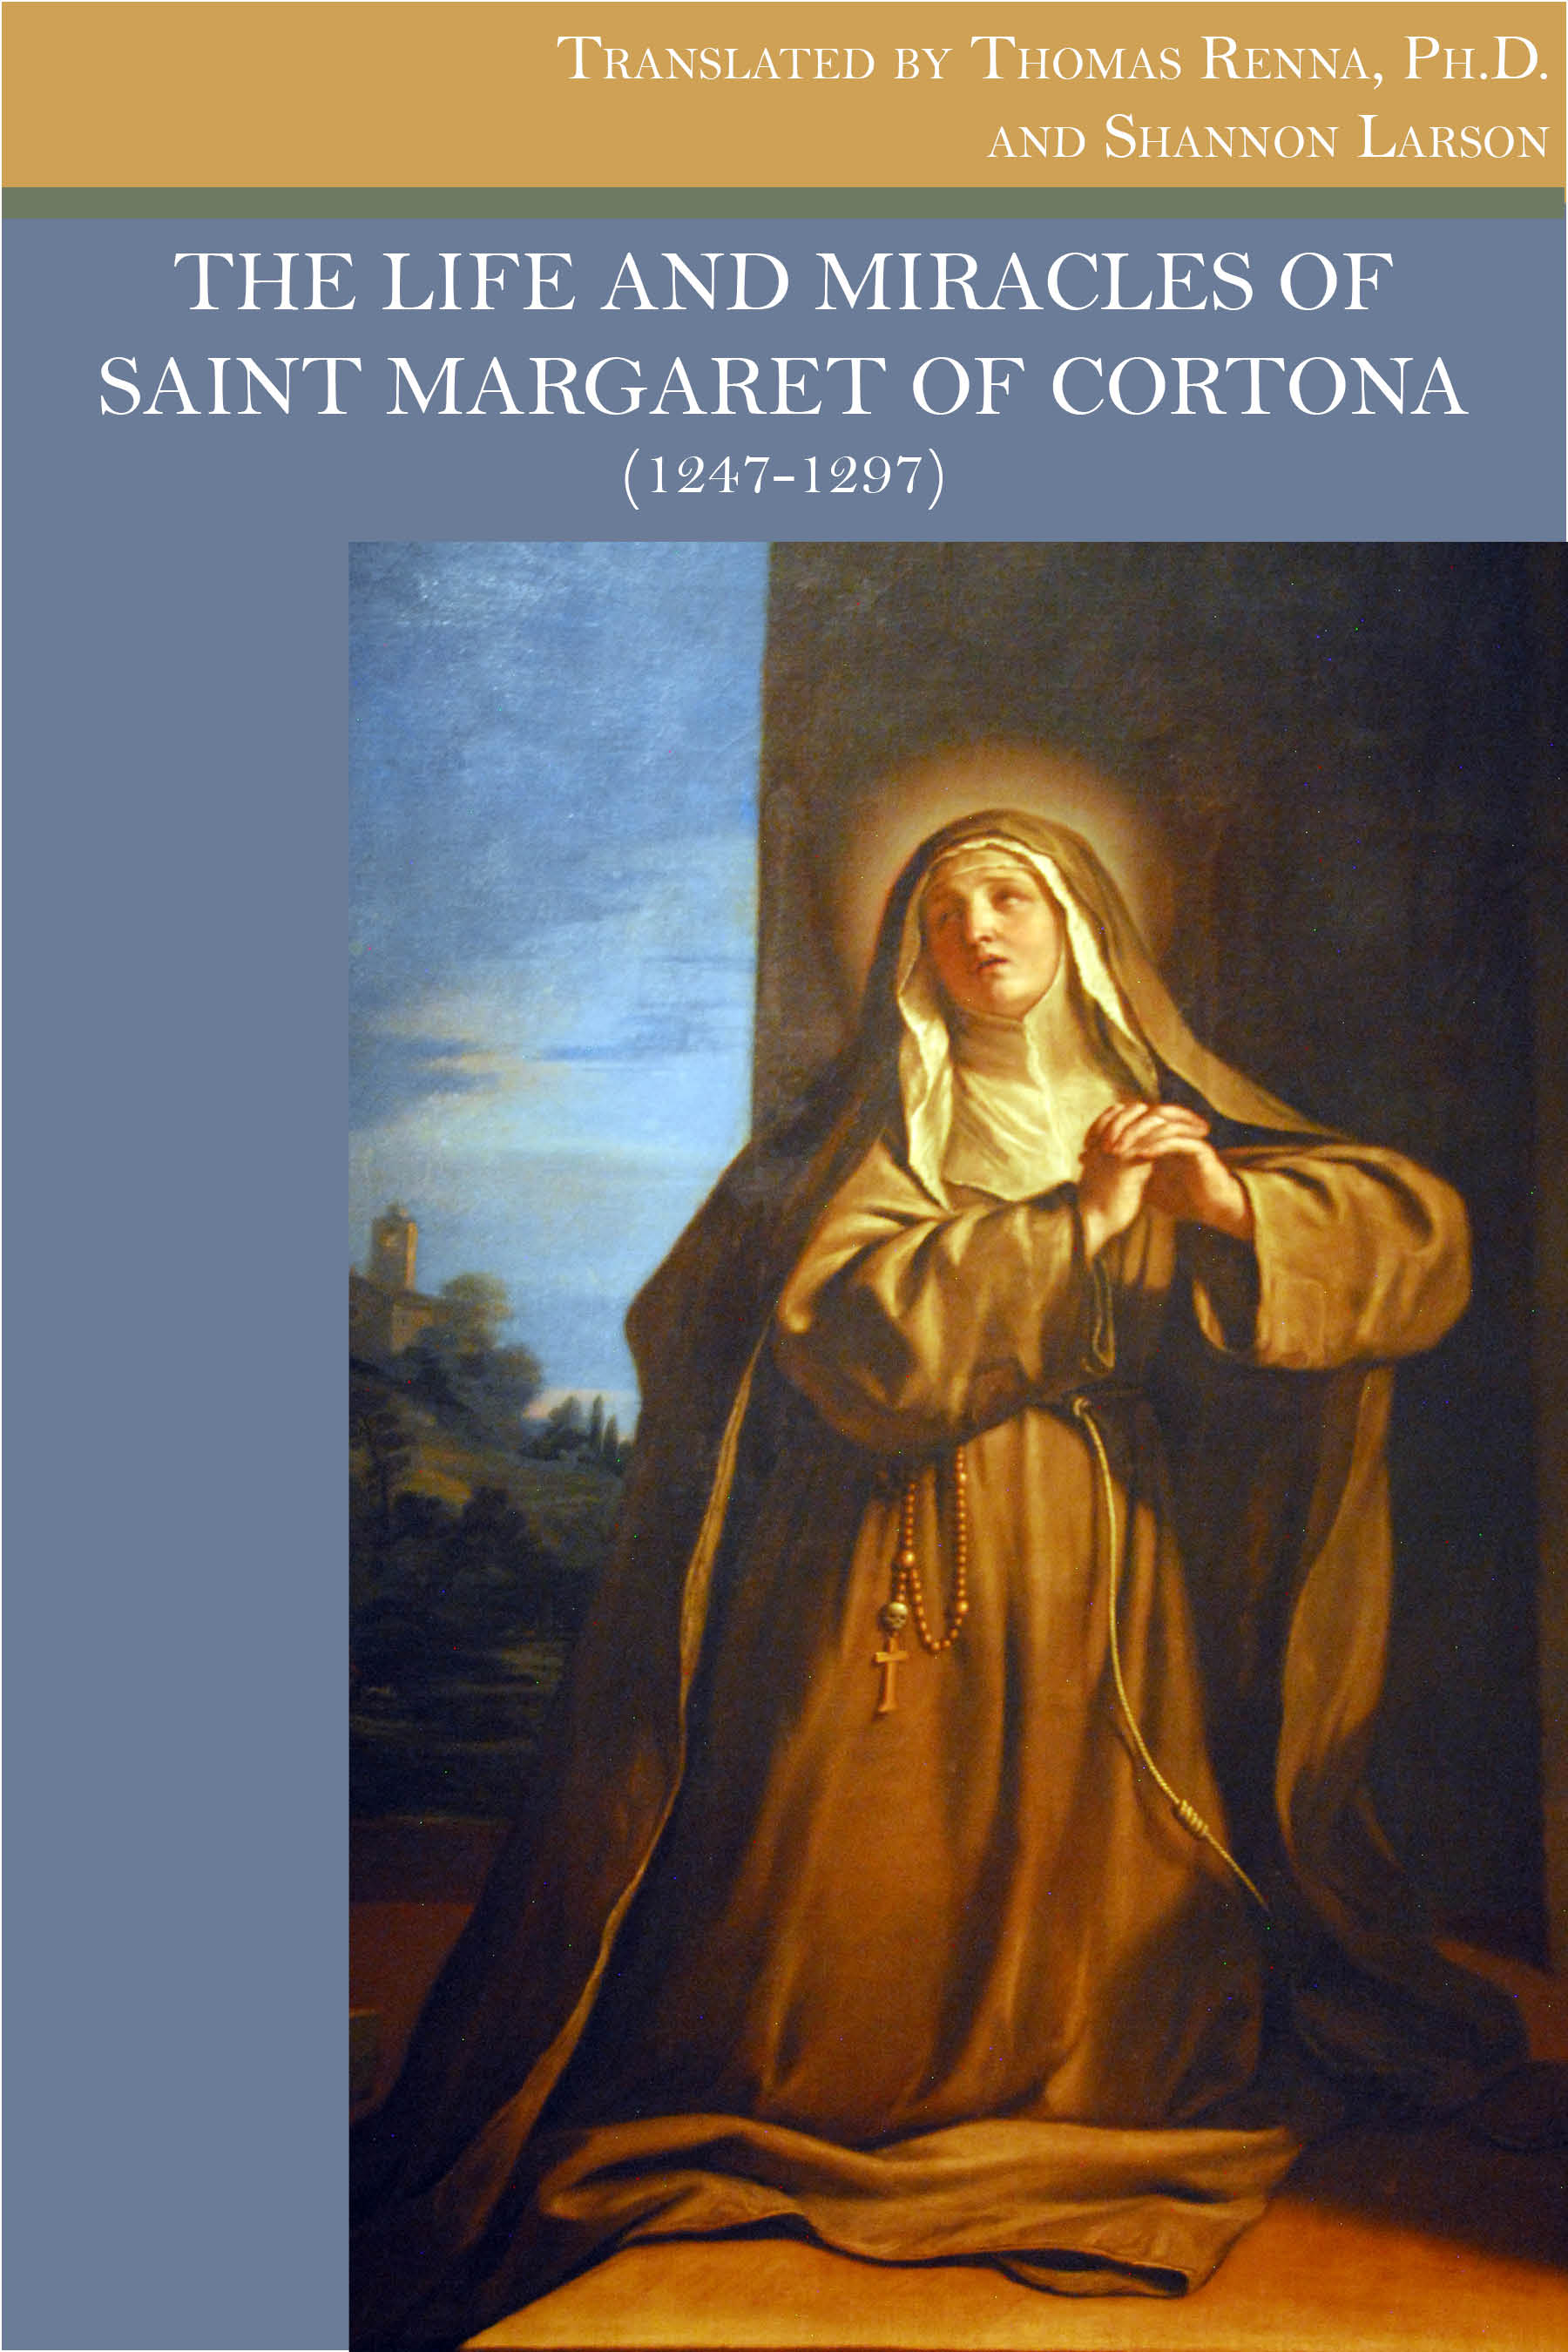 The Life and Miracles of St. Margaret of Cortona (1247 – 1297)